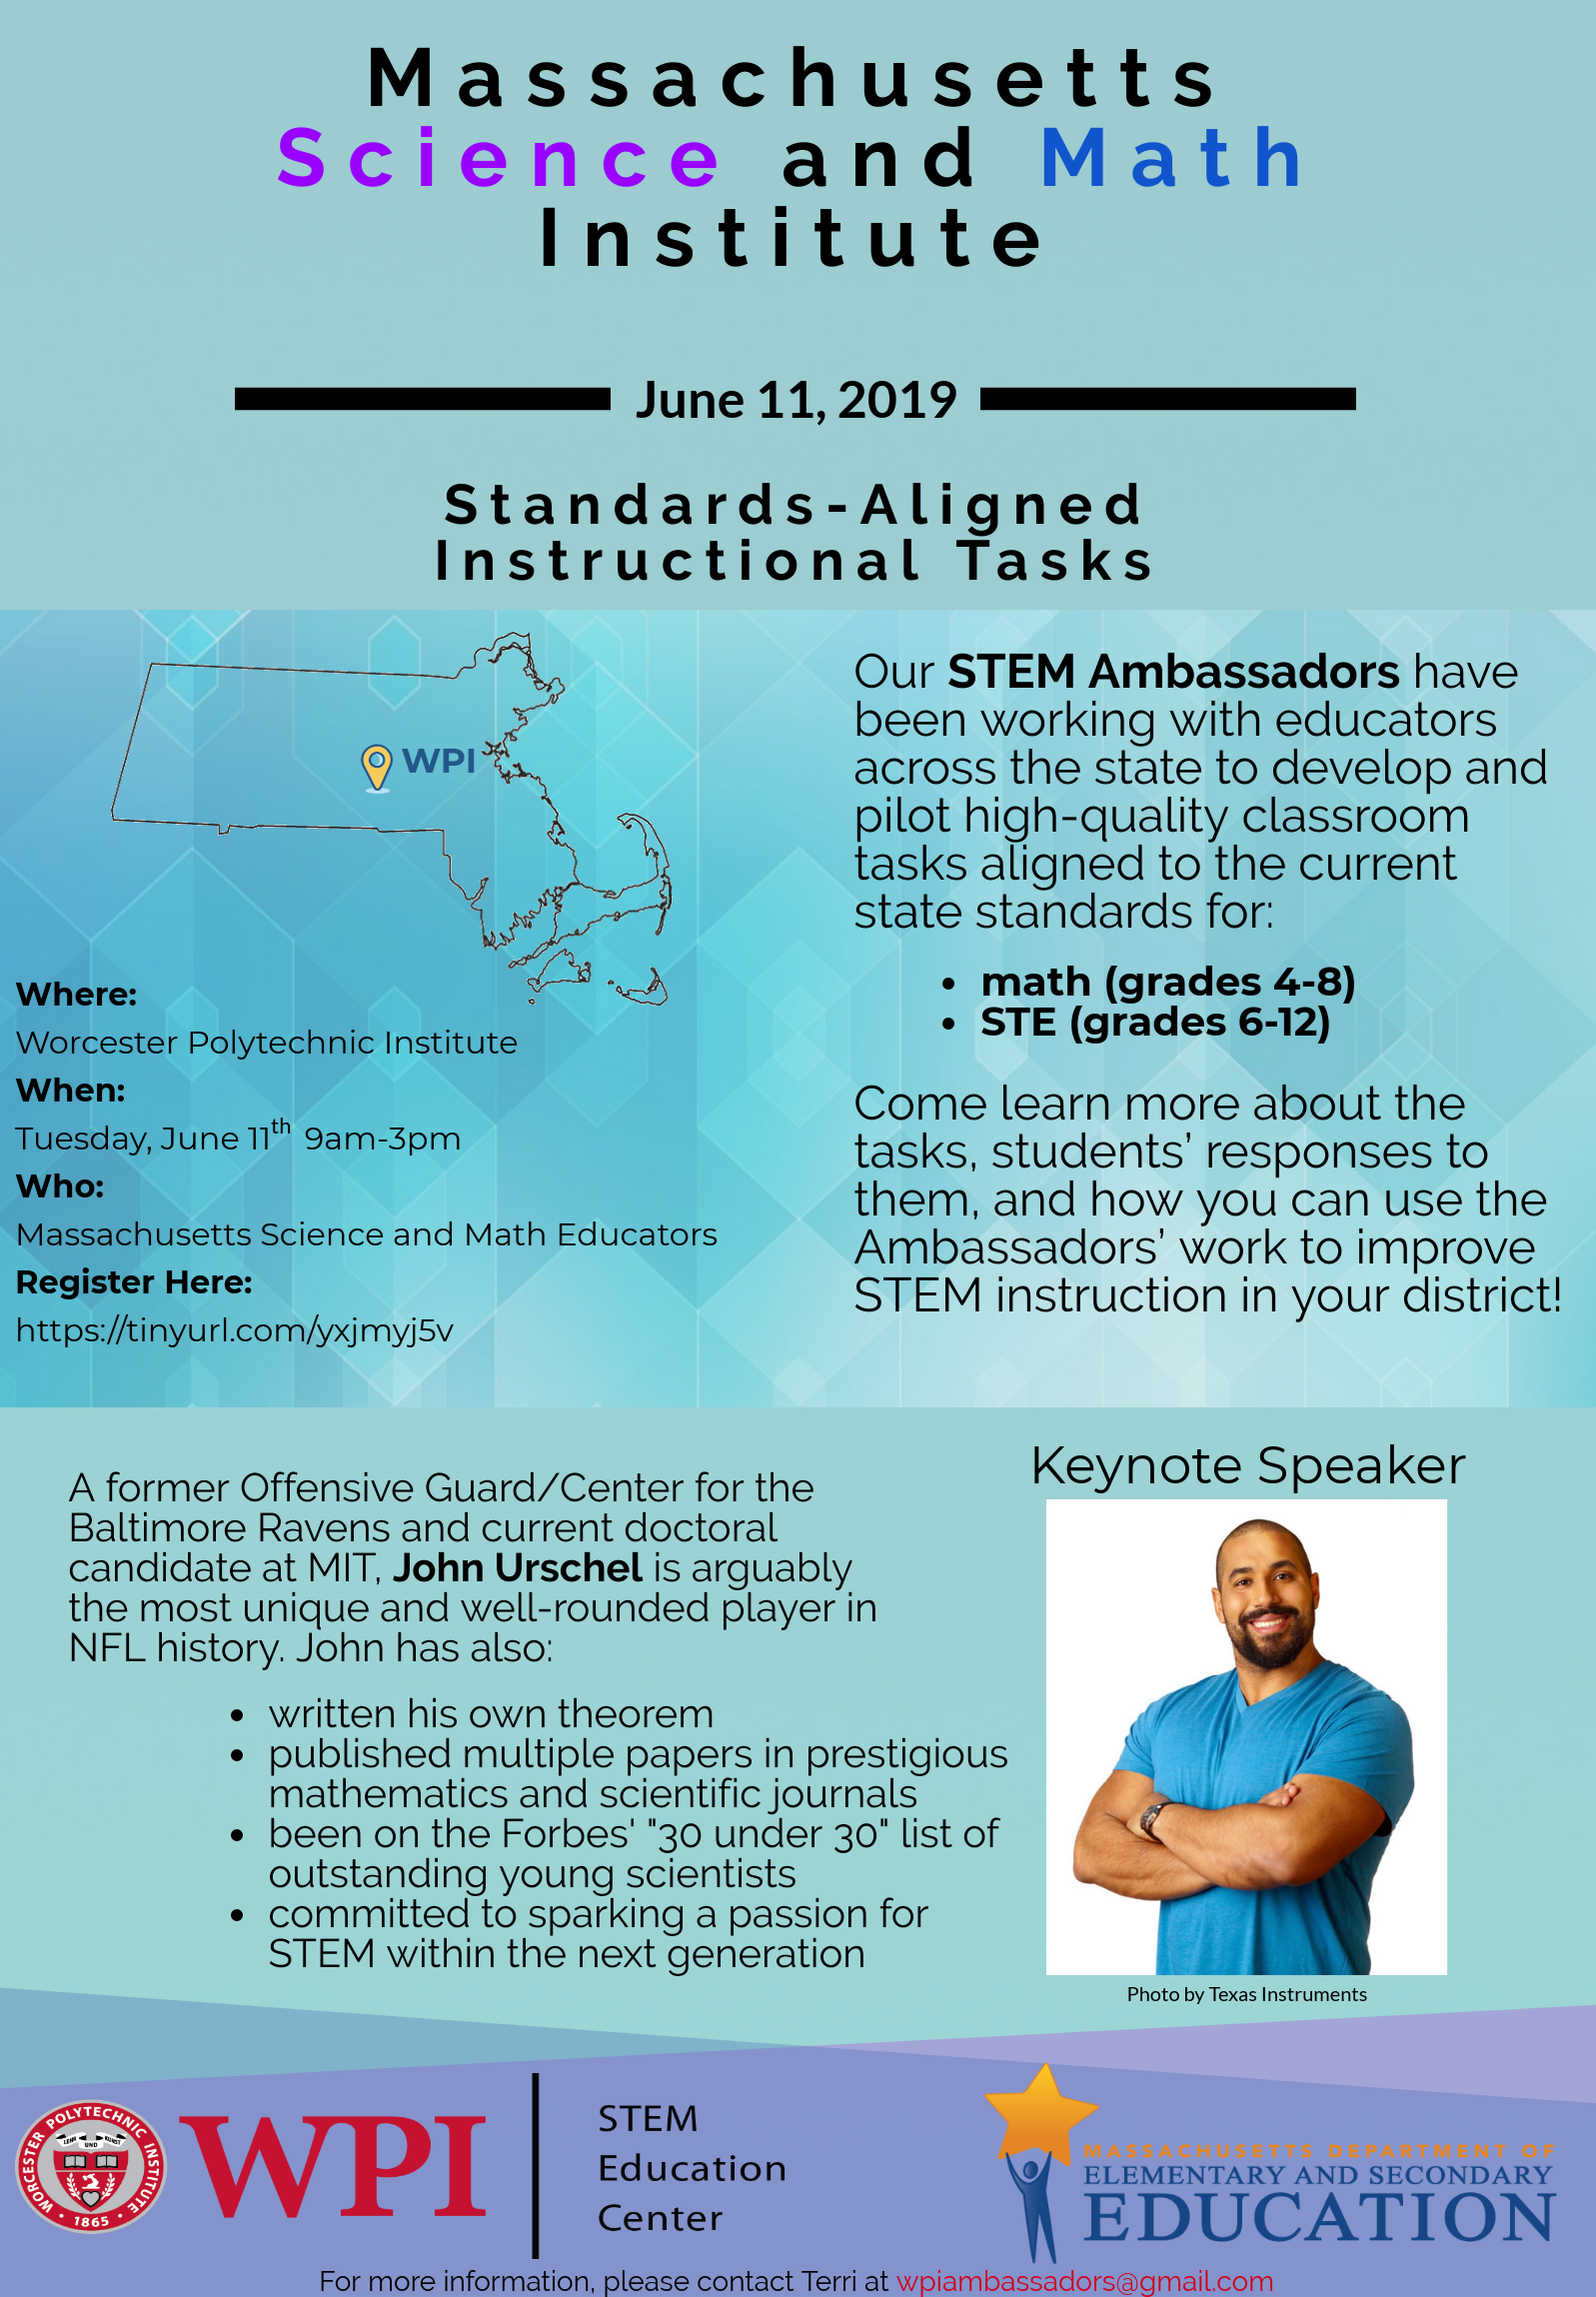 STEM Institute flyer includes information about location, date, and keynote speaker.